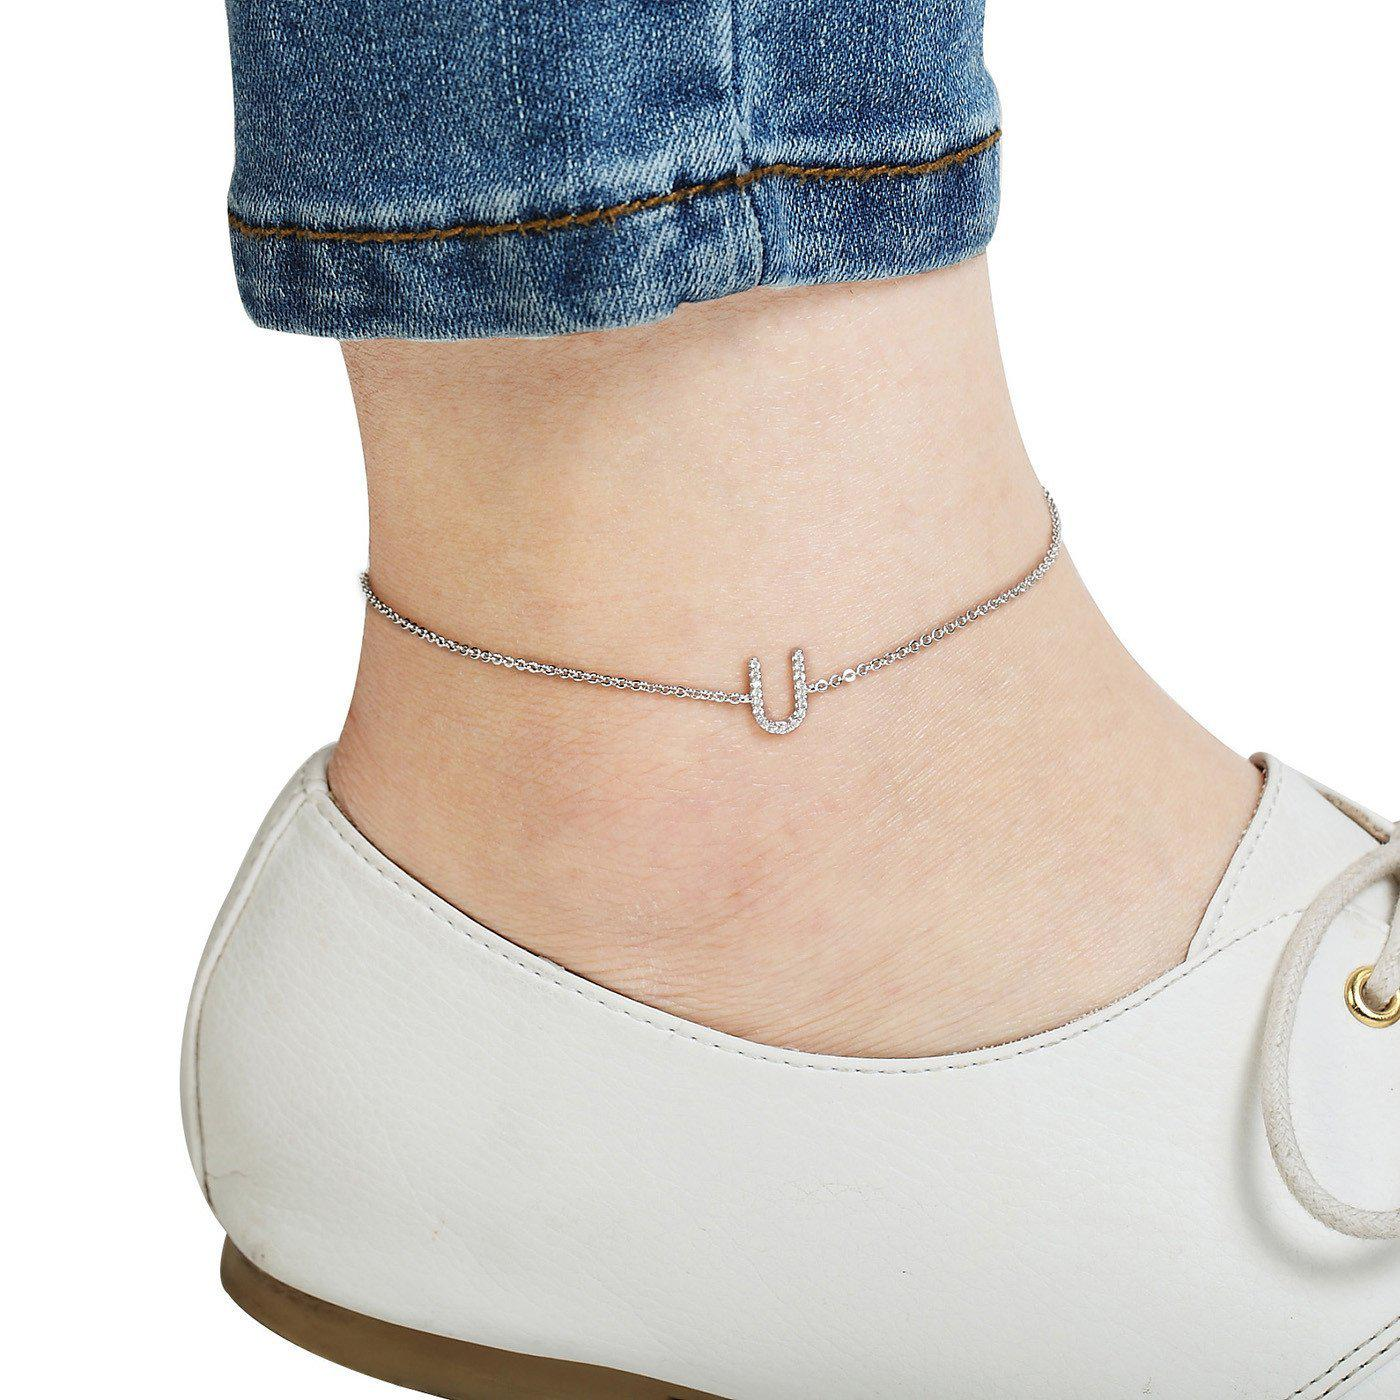 Your Initial U Anklet-Blinglane